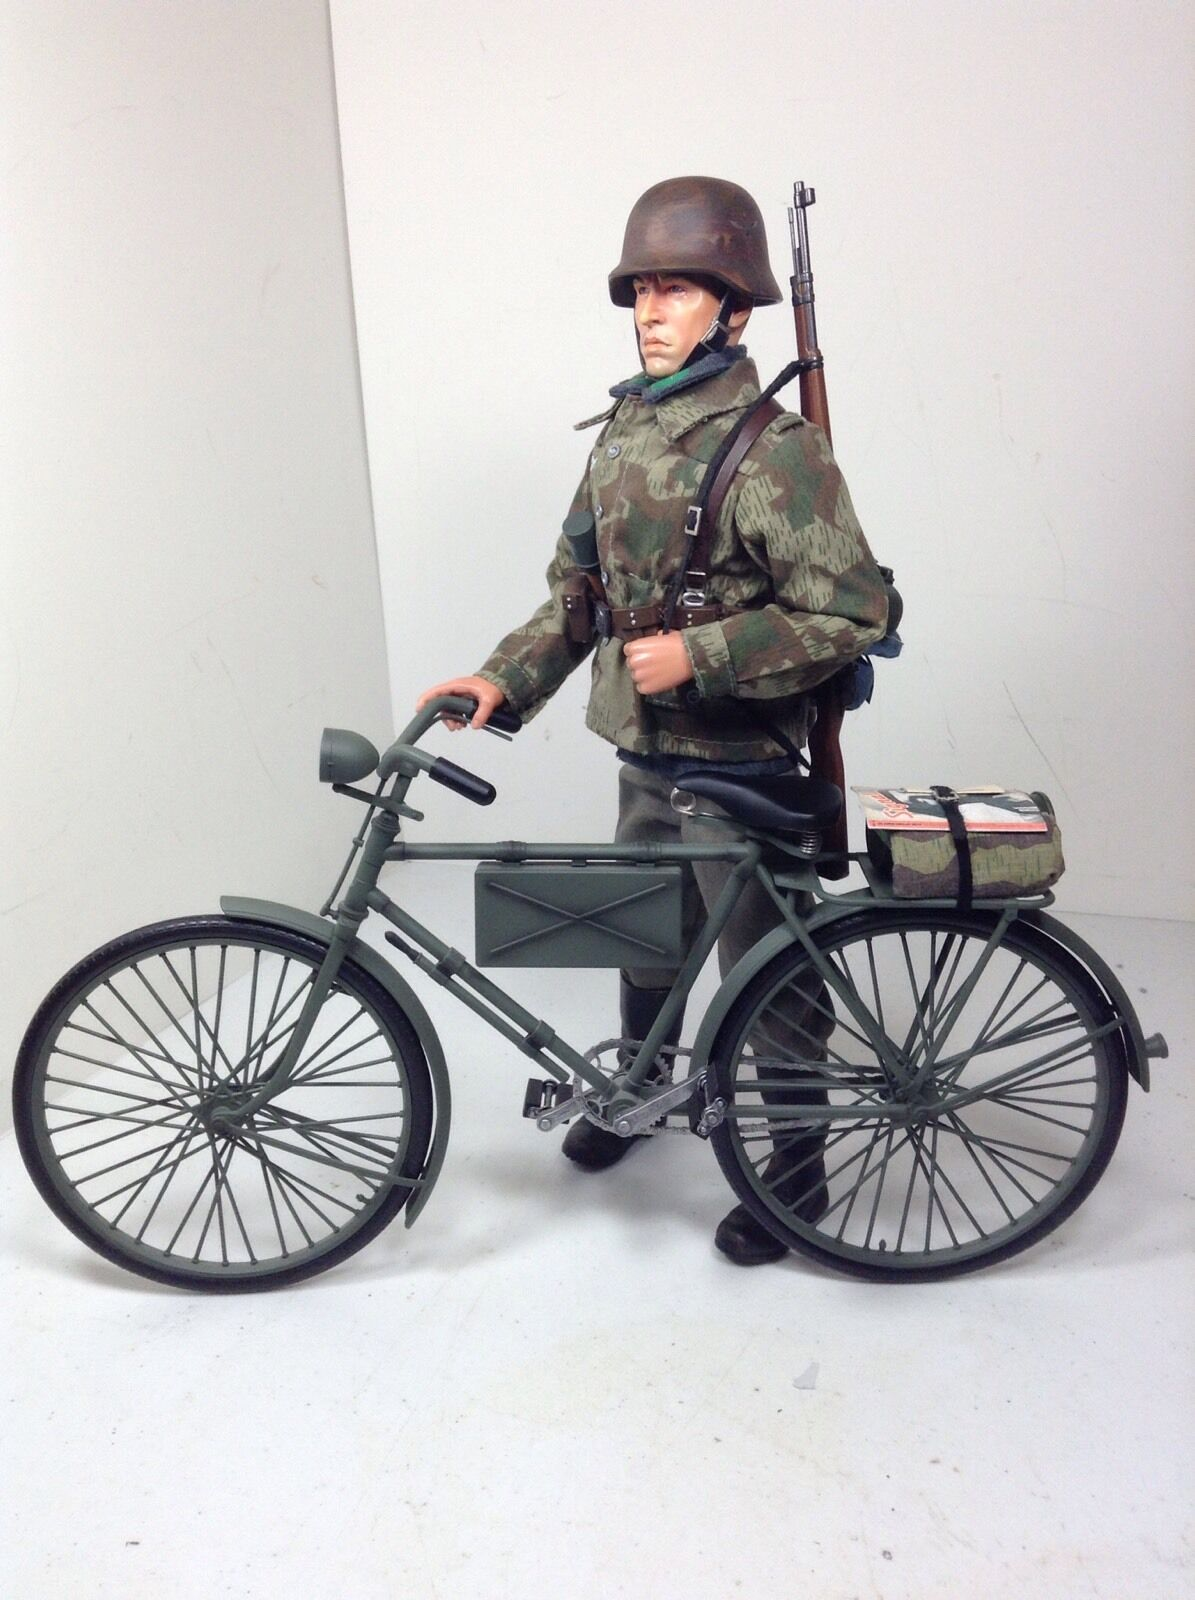 16 Dragon German Luftwaffe Ground Div Bicicleta Hombre De Infantería Bbi Did Xxi Ww2